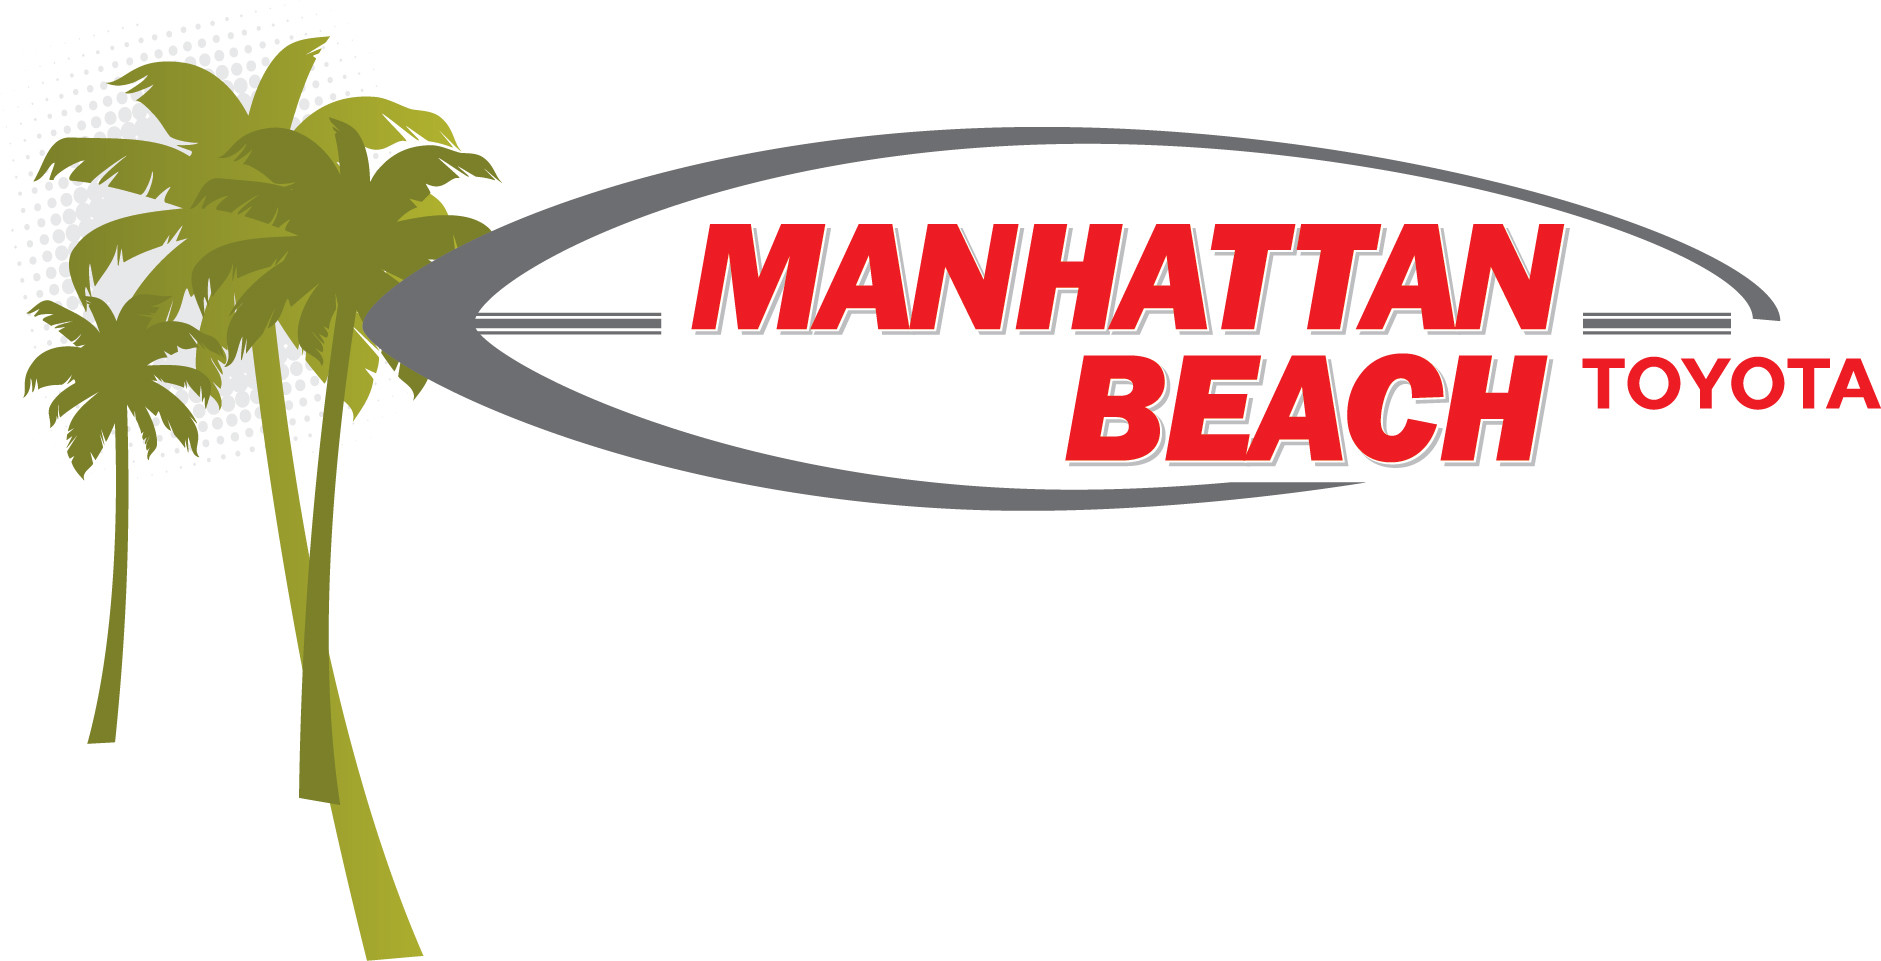 Manhattan Beach Toyota, a Reynolds and Reynolds partner.